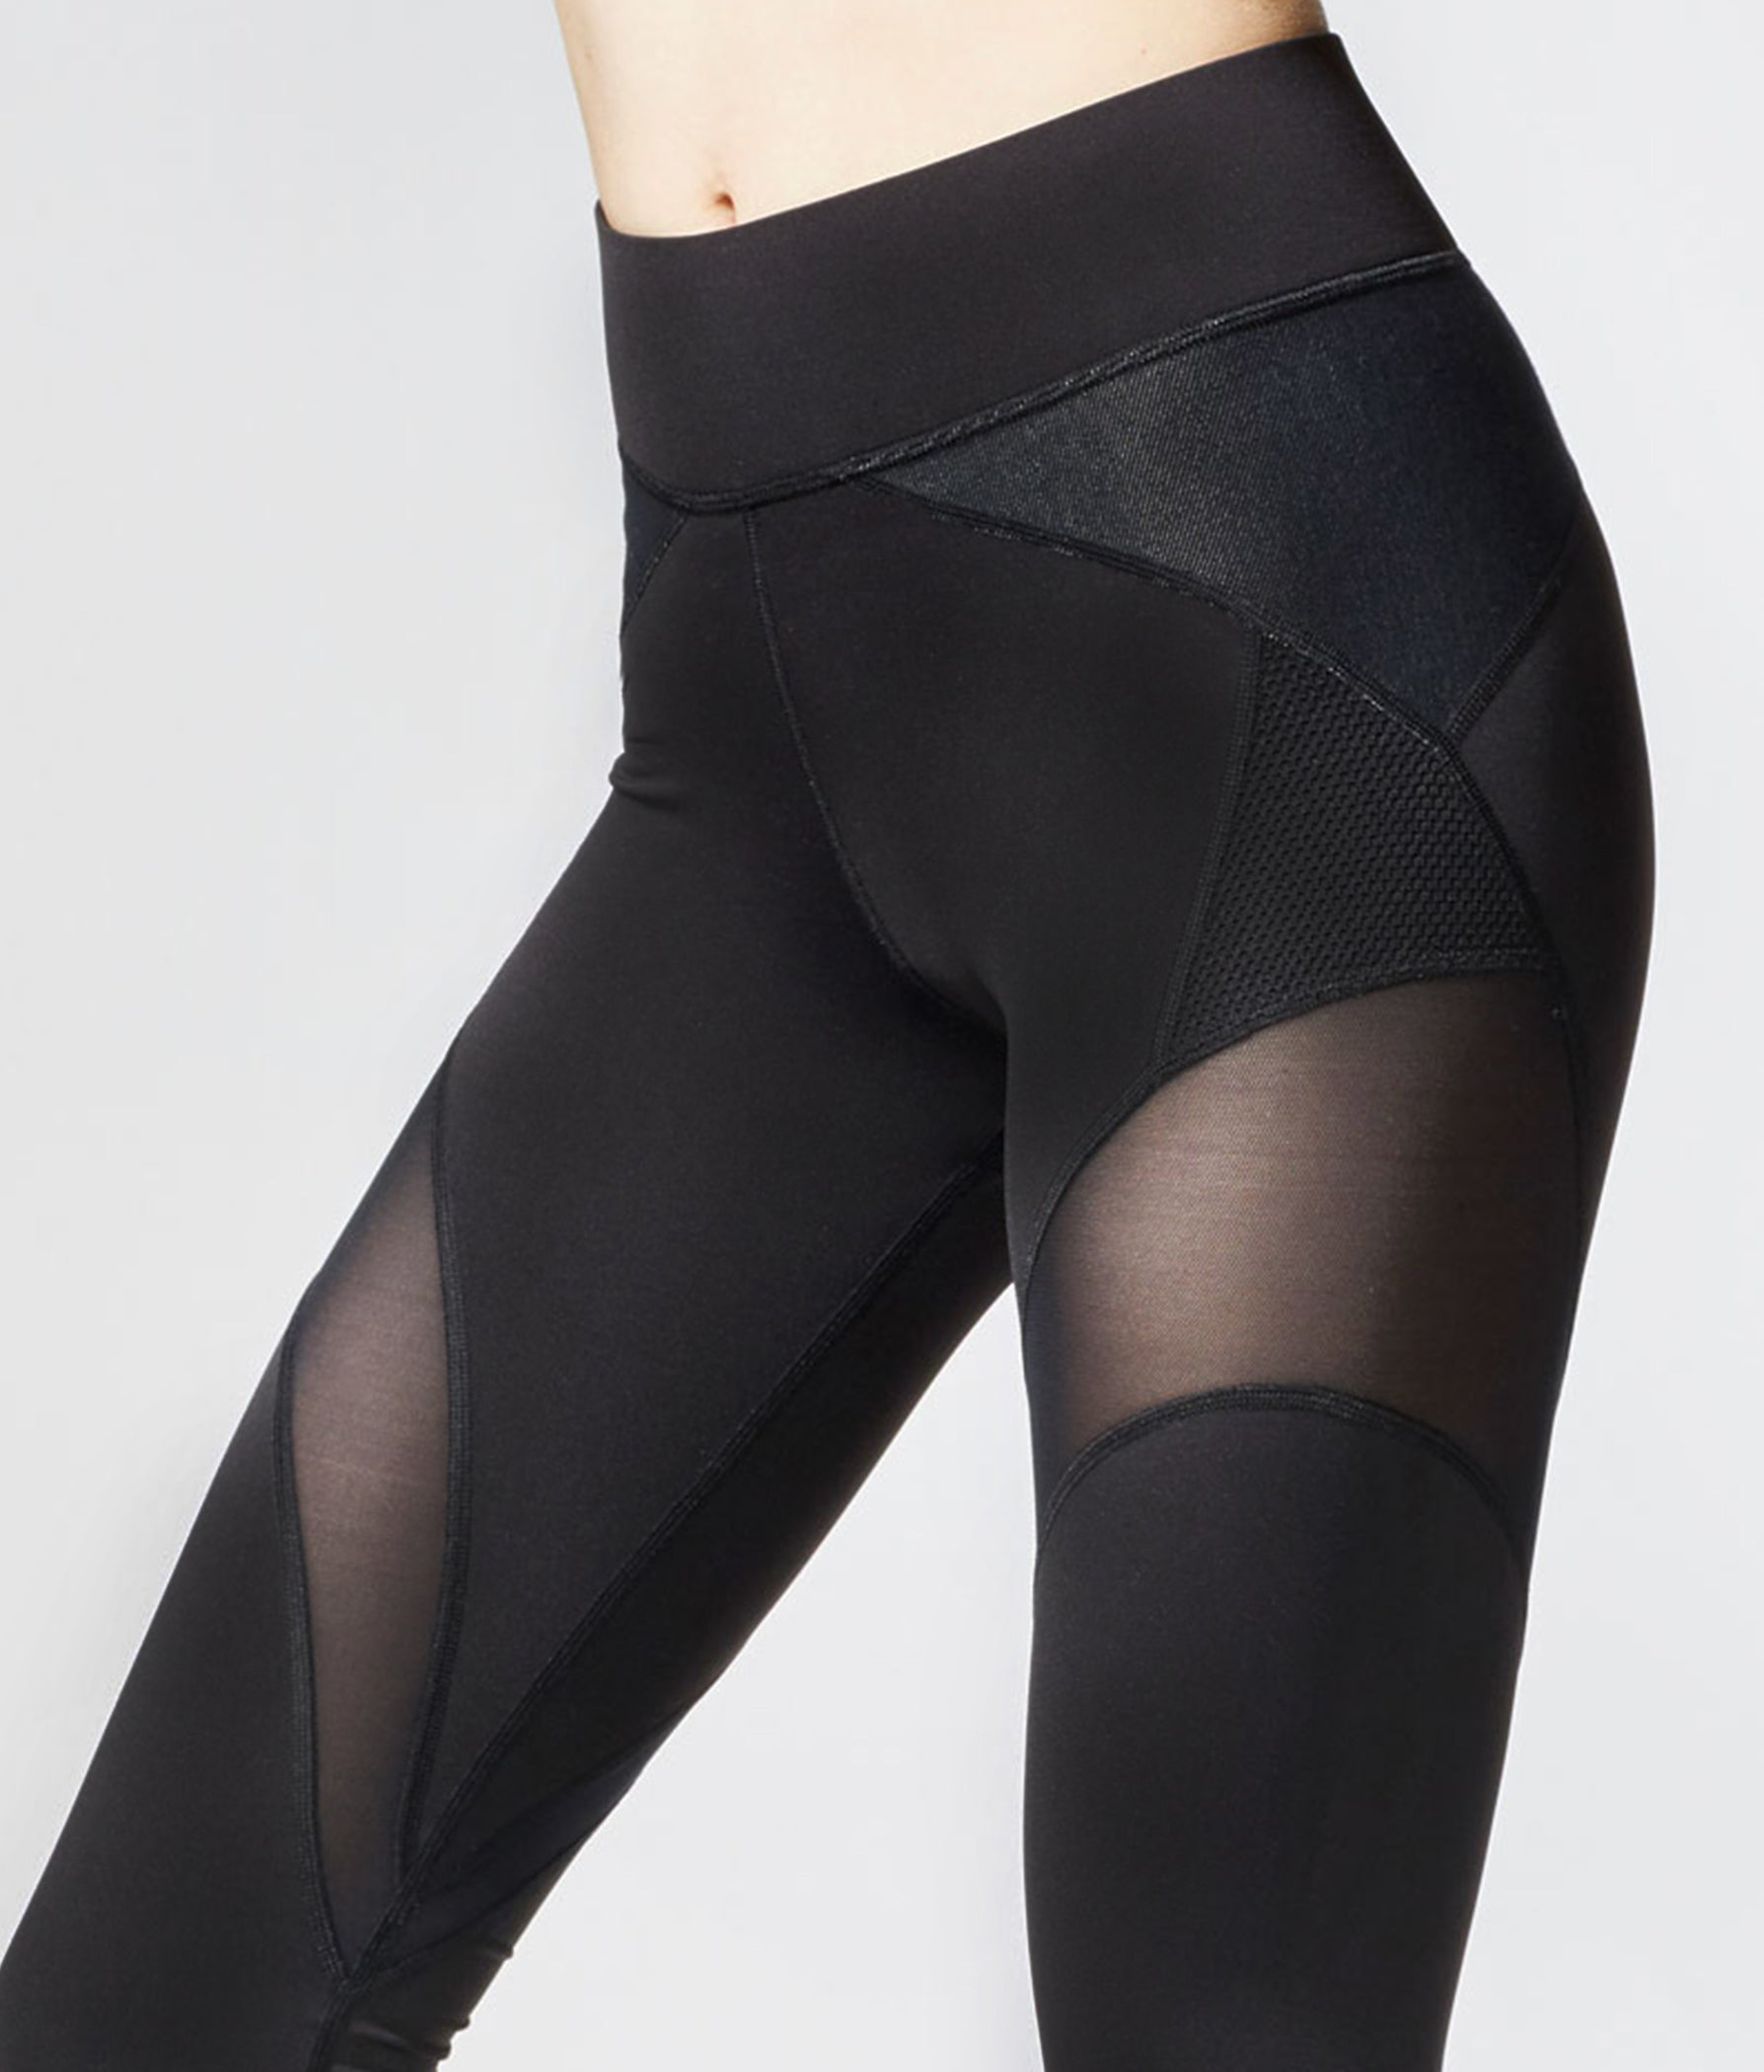 leggings for women